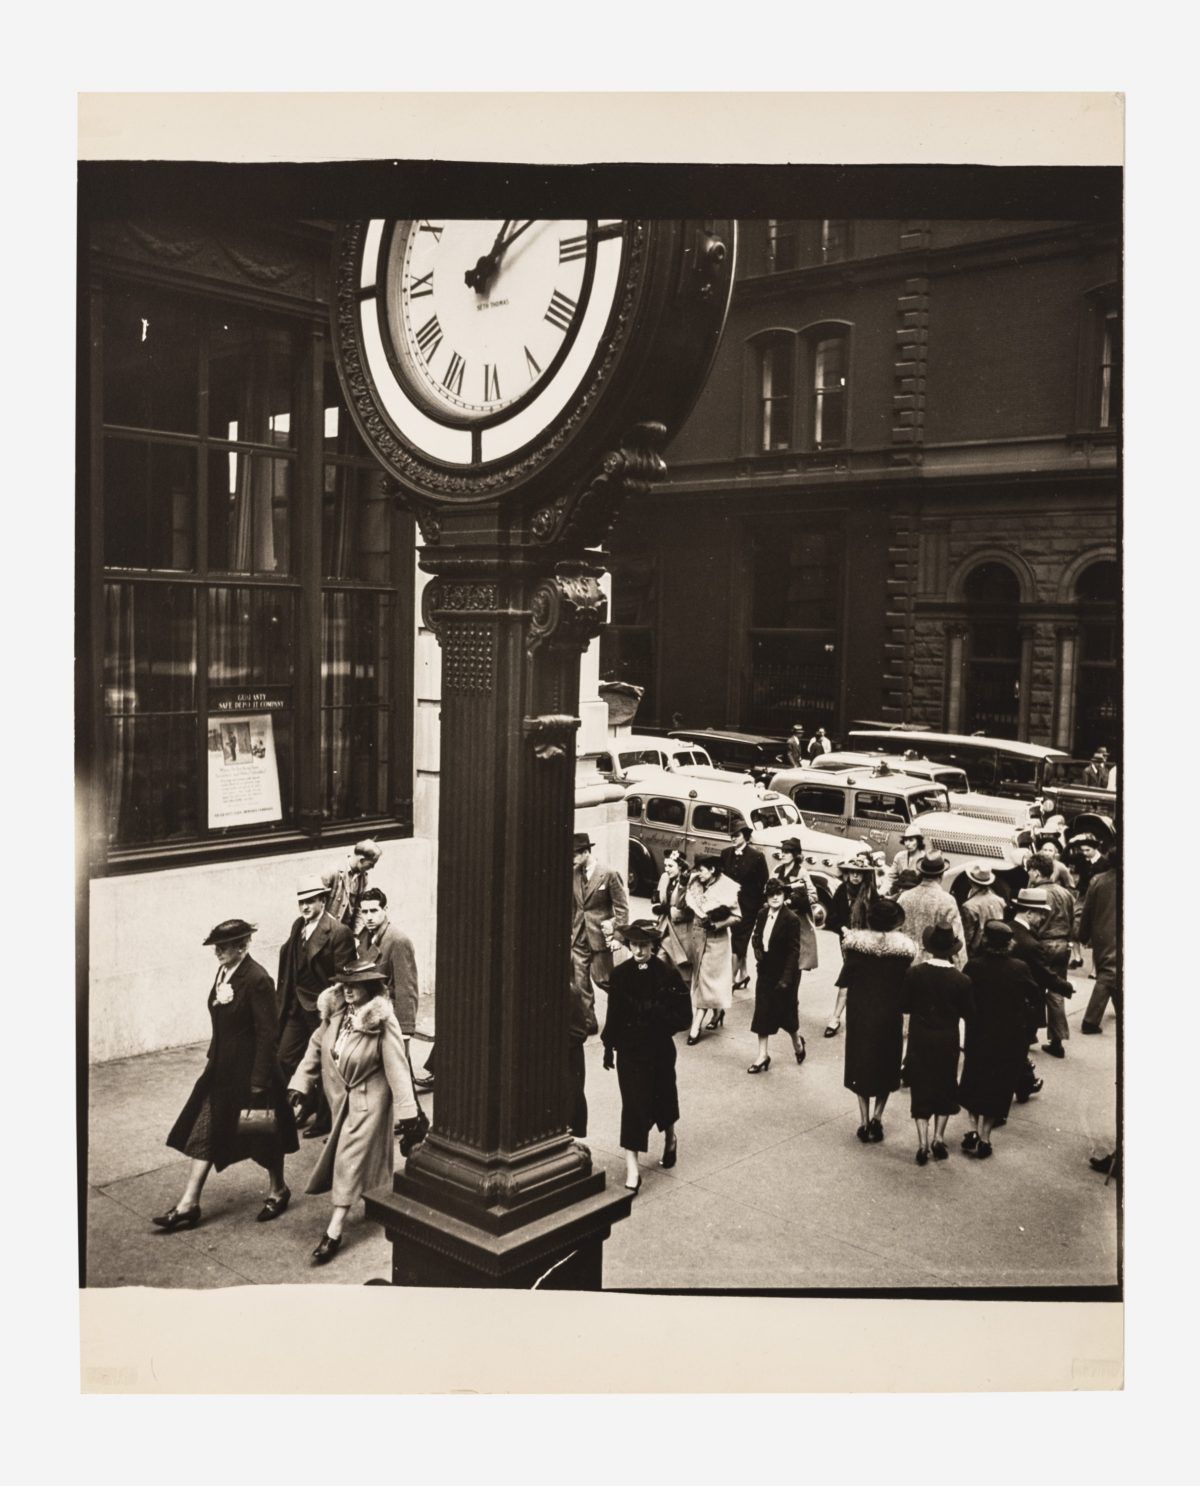 Berenice Abbott - Tempo of the City, 5th Avenue and 44th Street, New York